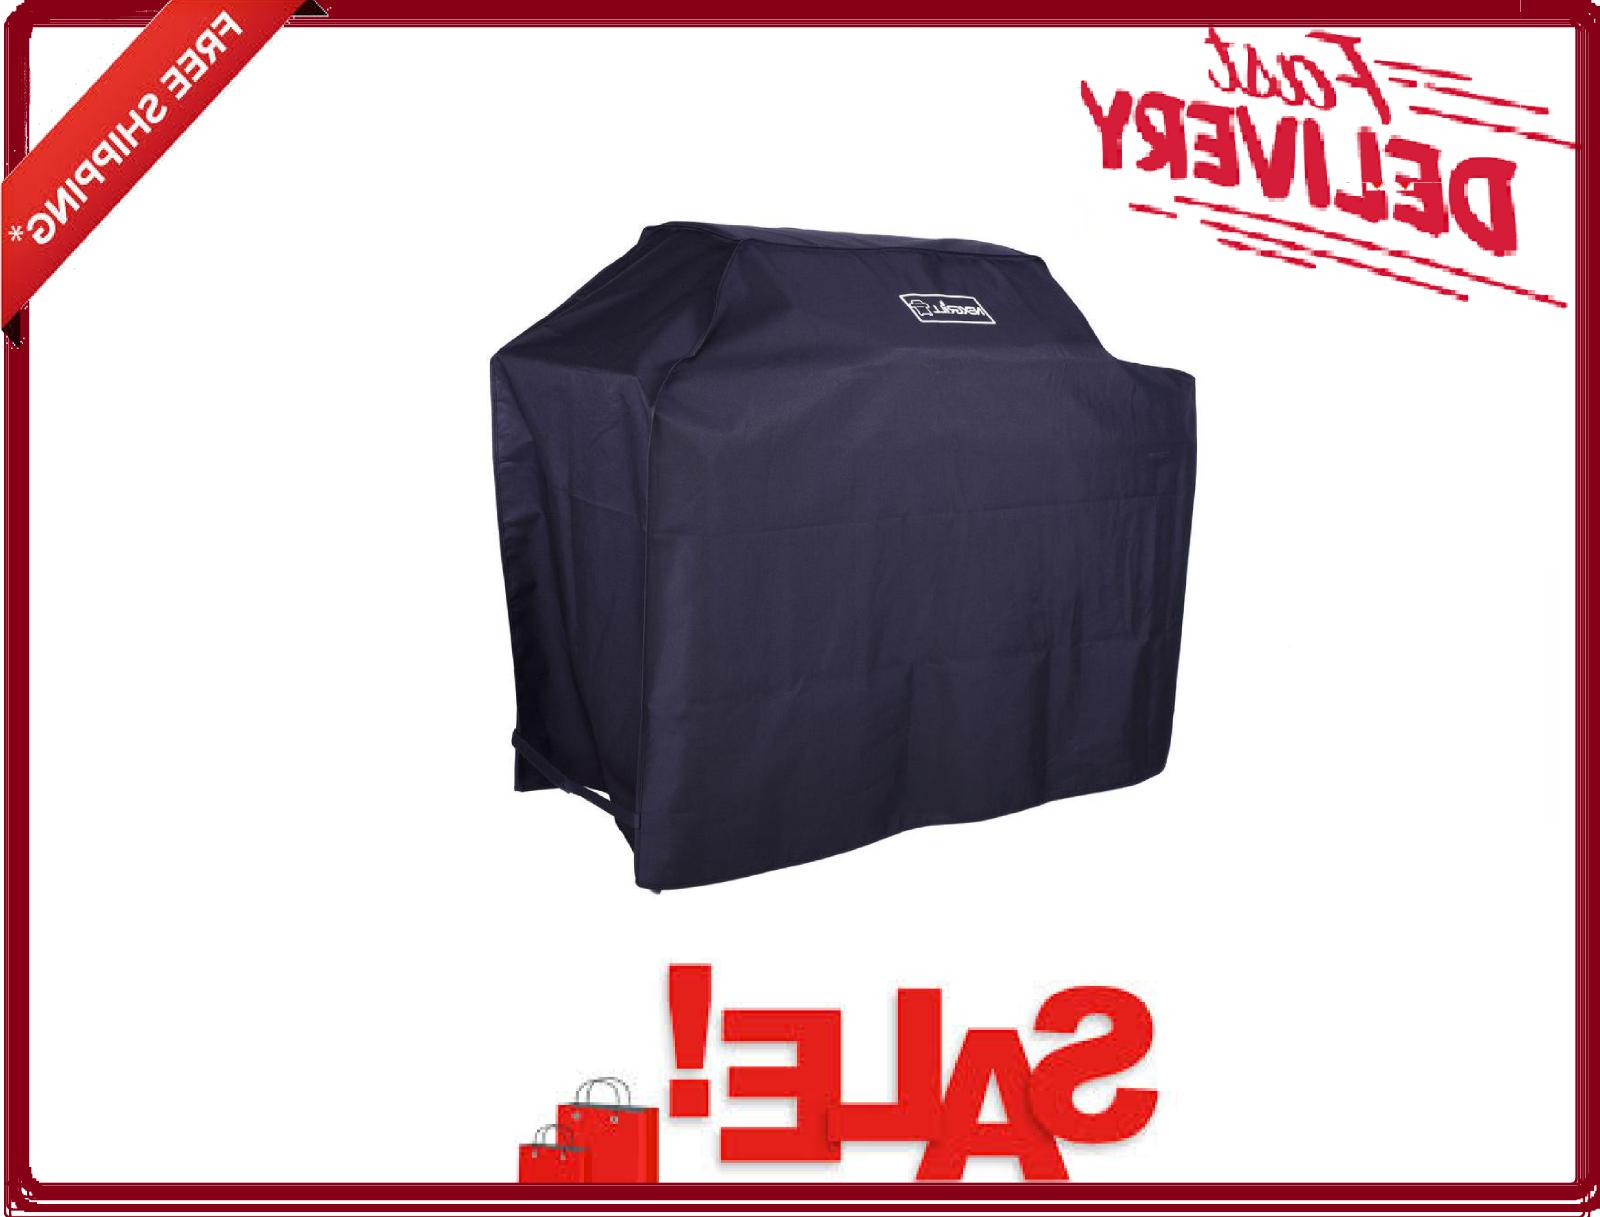 barbecue grill cover tent style with straps